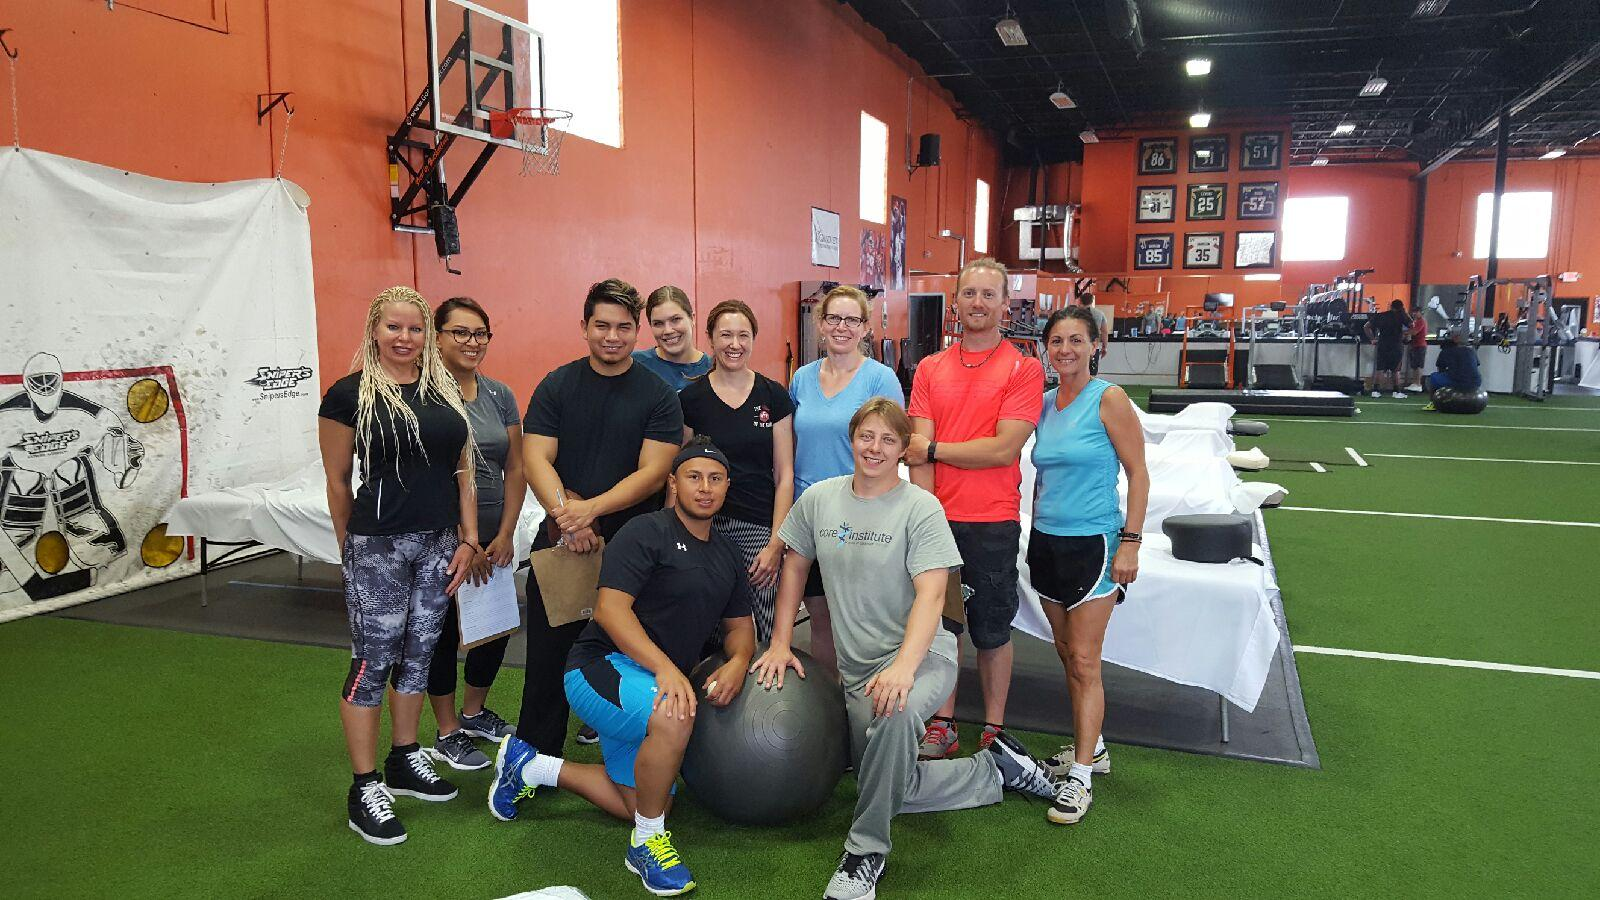 Our group at XPE Sports with Ryan (our teacher/tour guide)